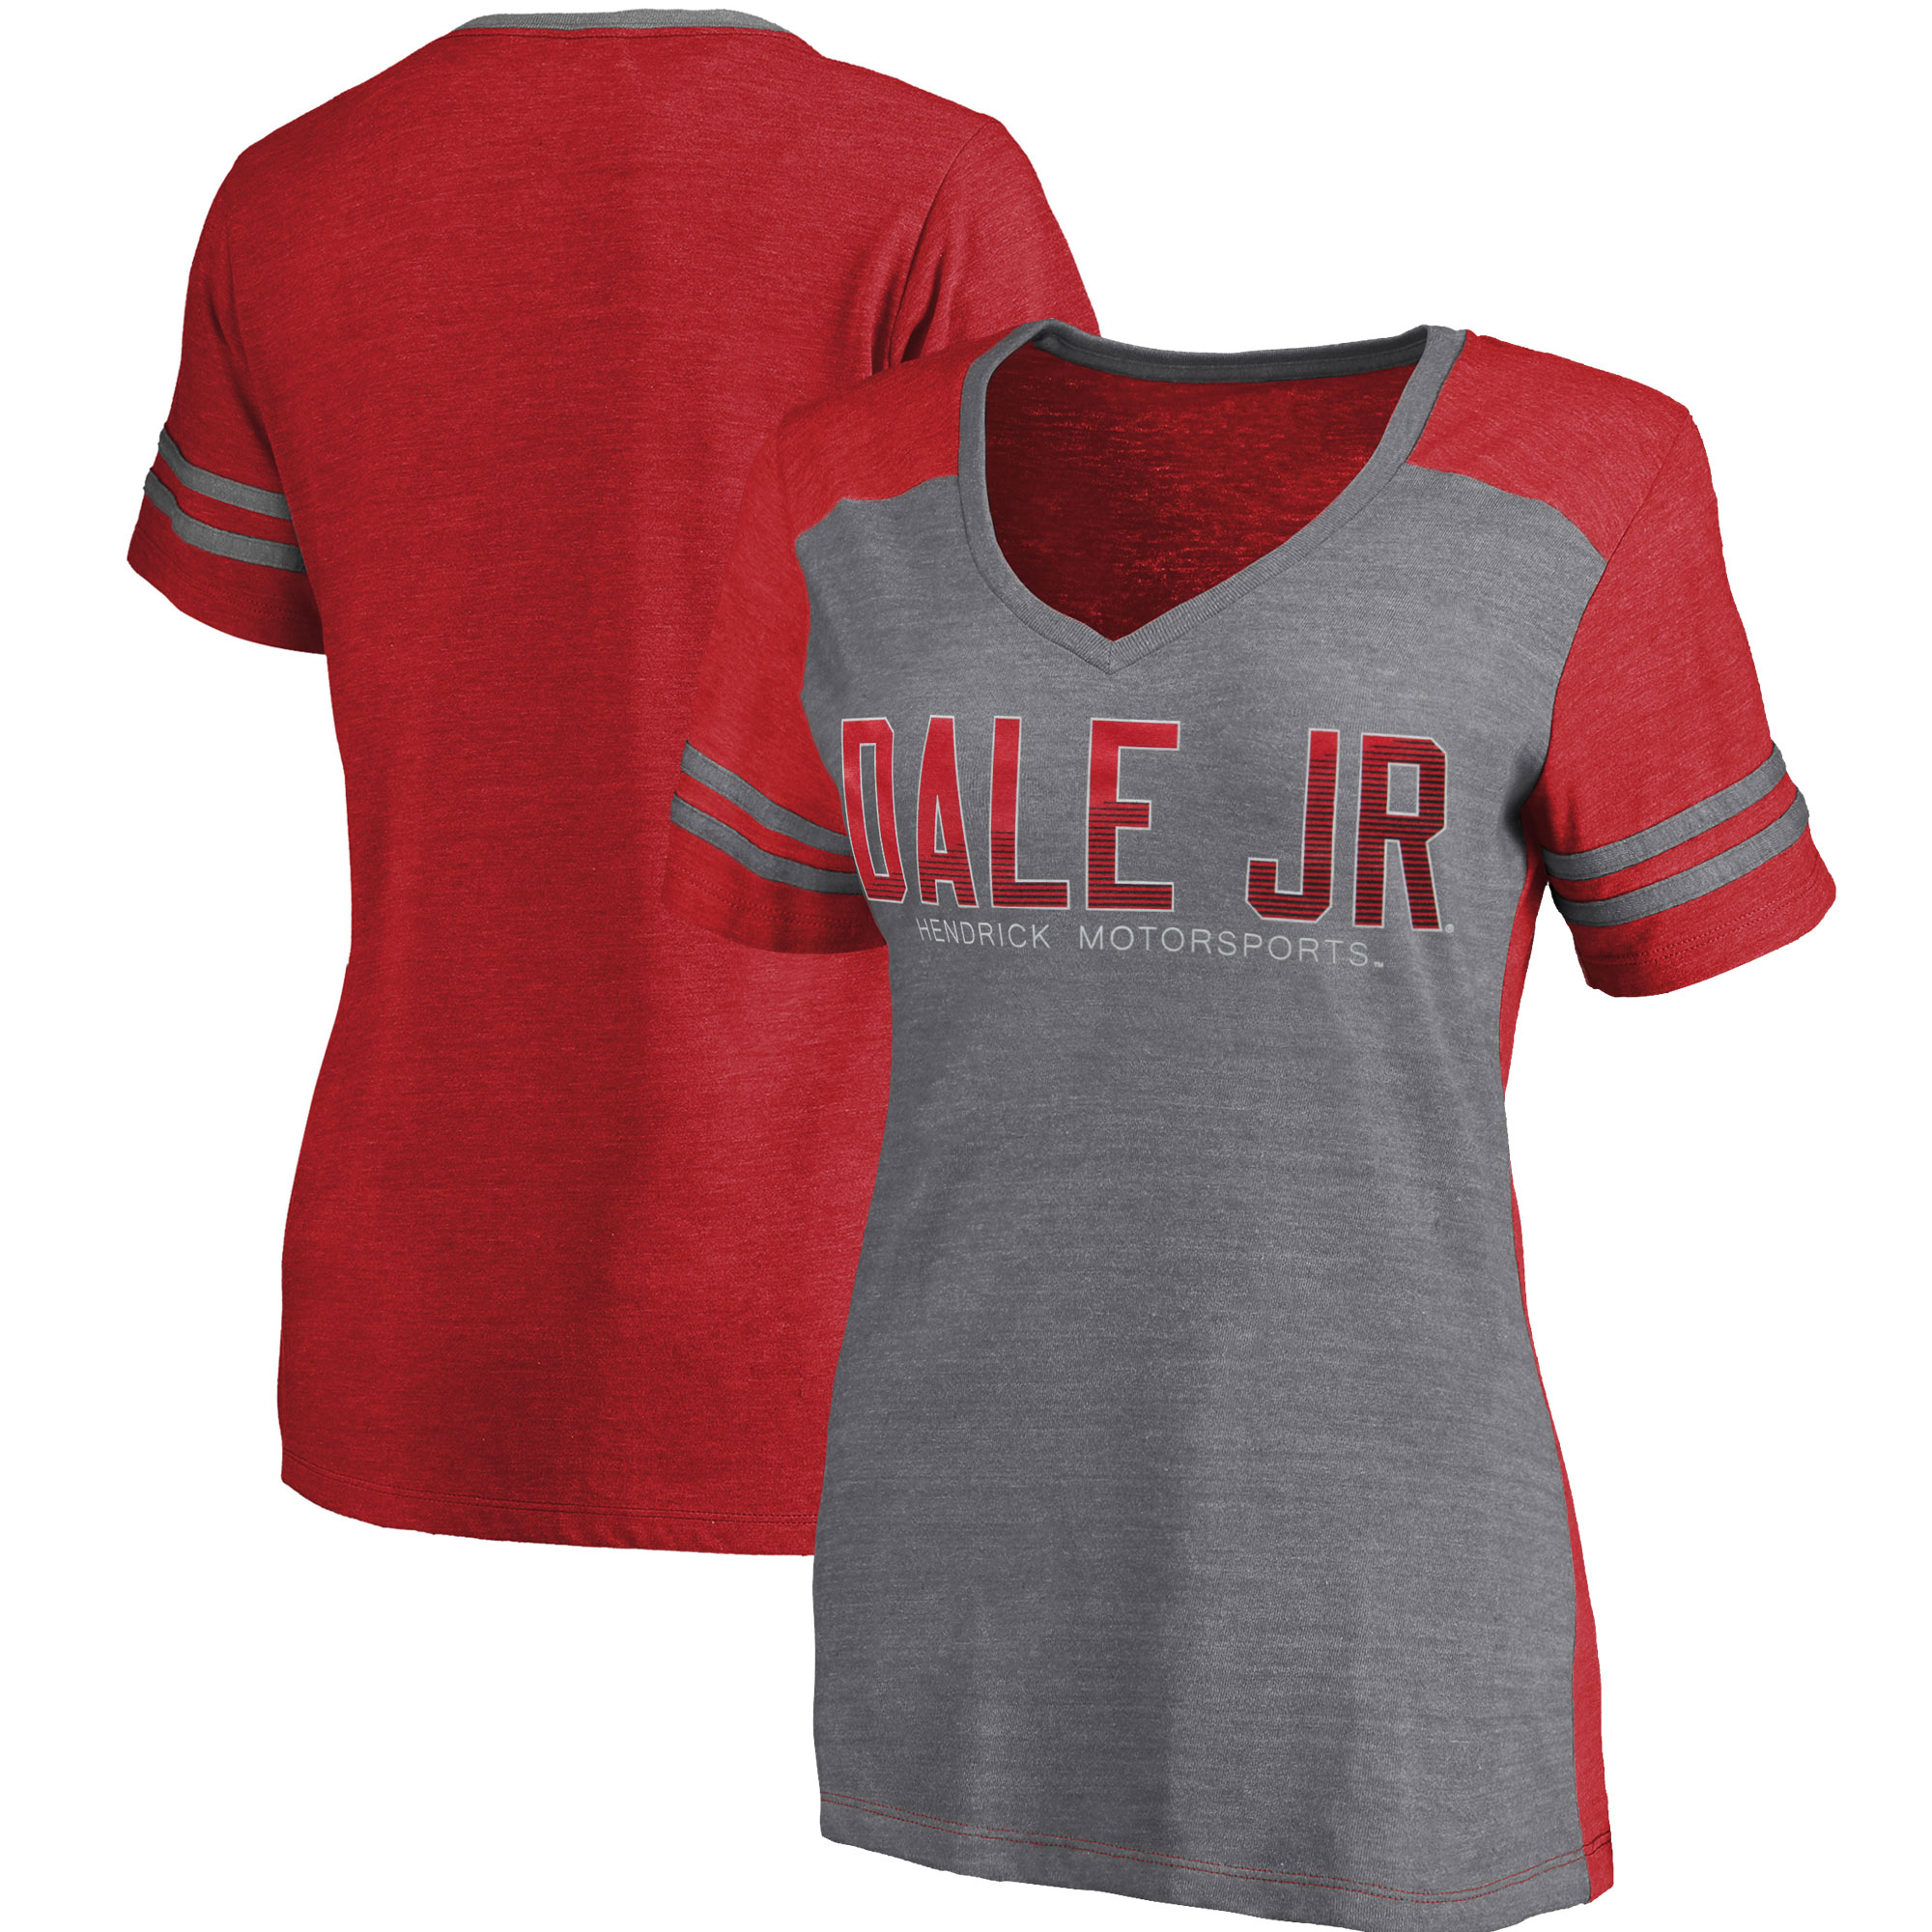 Dale Earnhardt Jr. Fanatics Branded Women's Stealth Pop Drivers V-Neck Raglan T-Shirt - Gray/Red